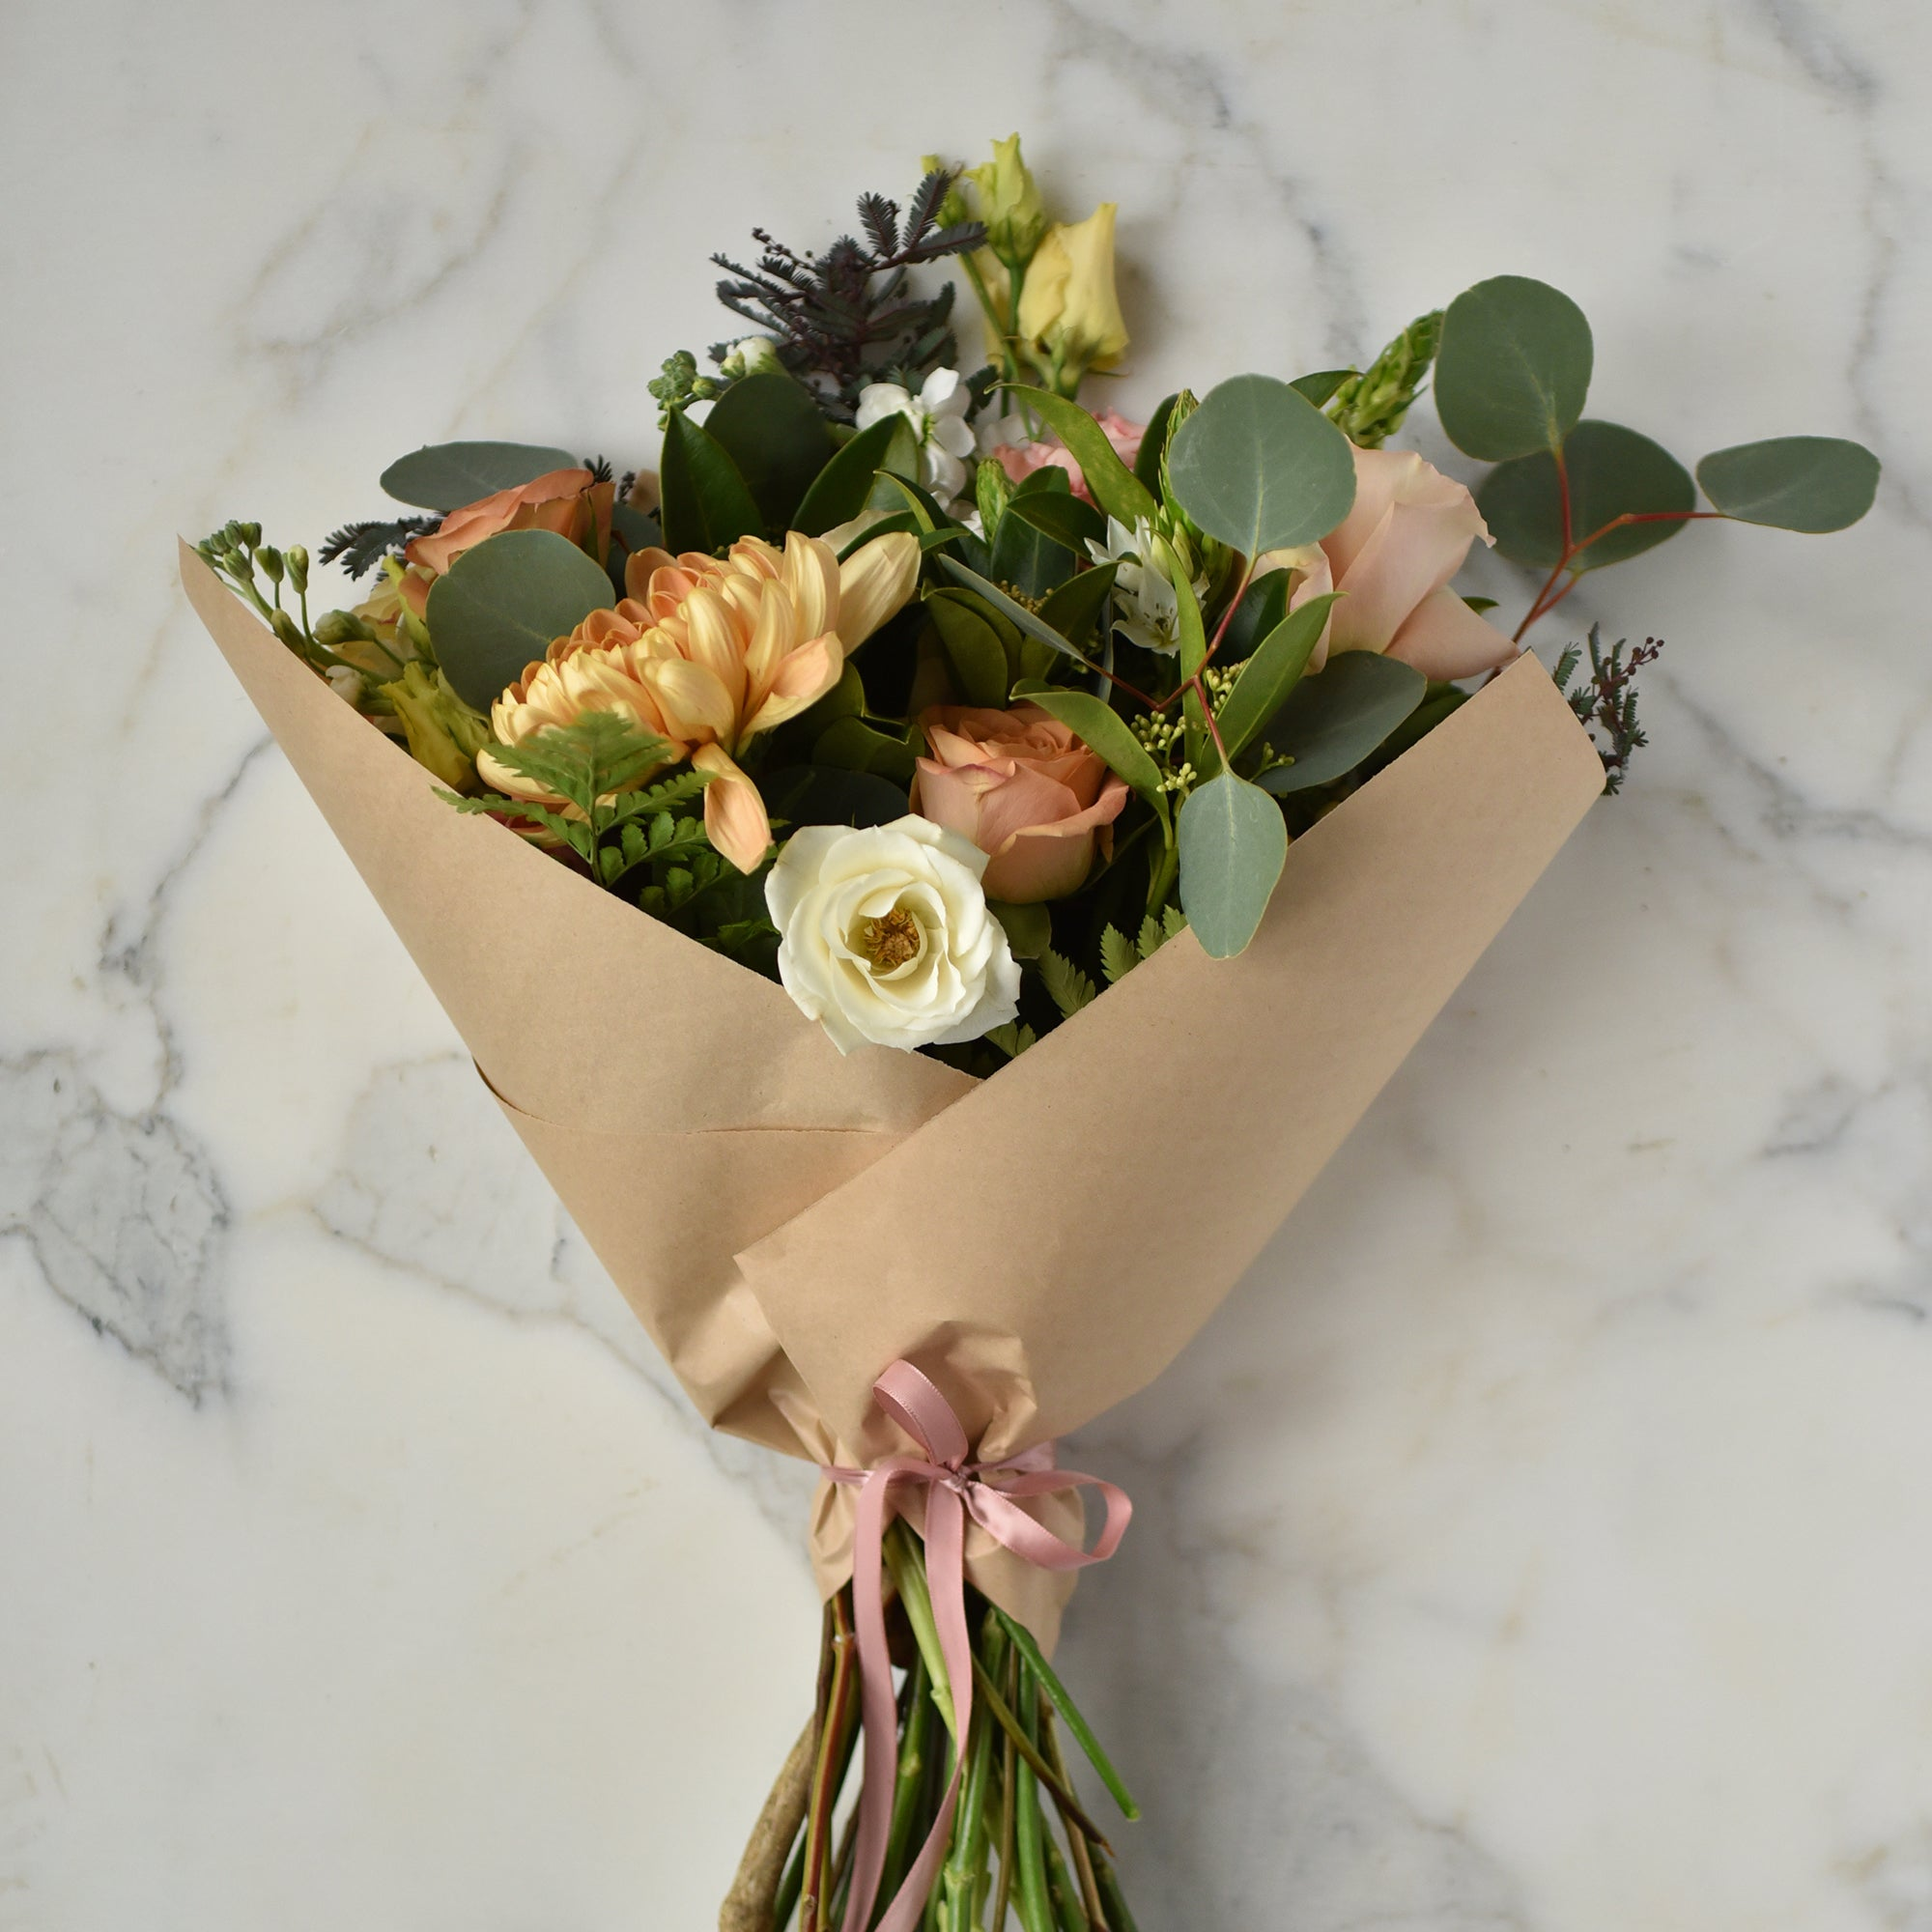 Hand-tied Bouquet in Kraft Paper